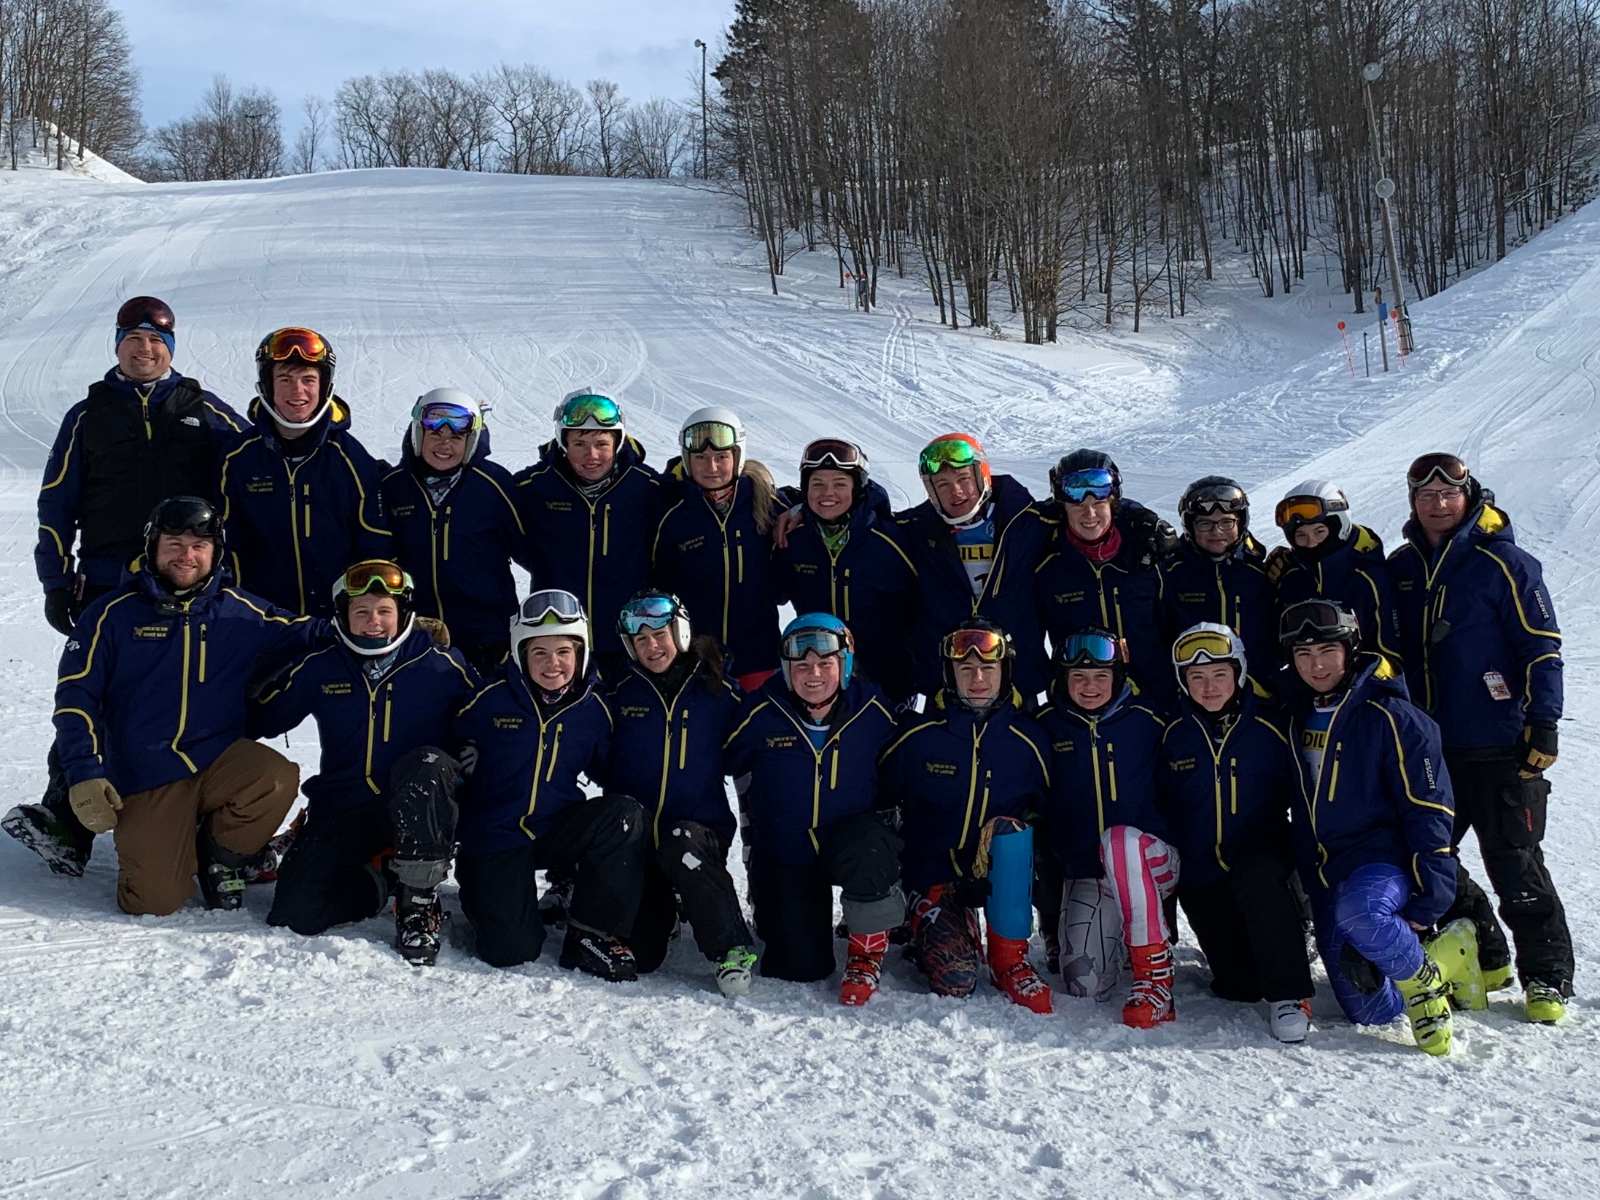 Ski Teams Place Sixth in Division 2 State Finals